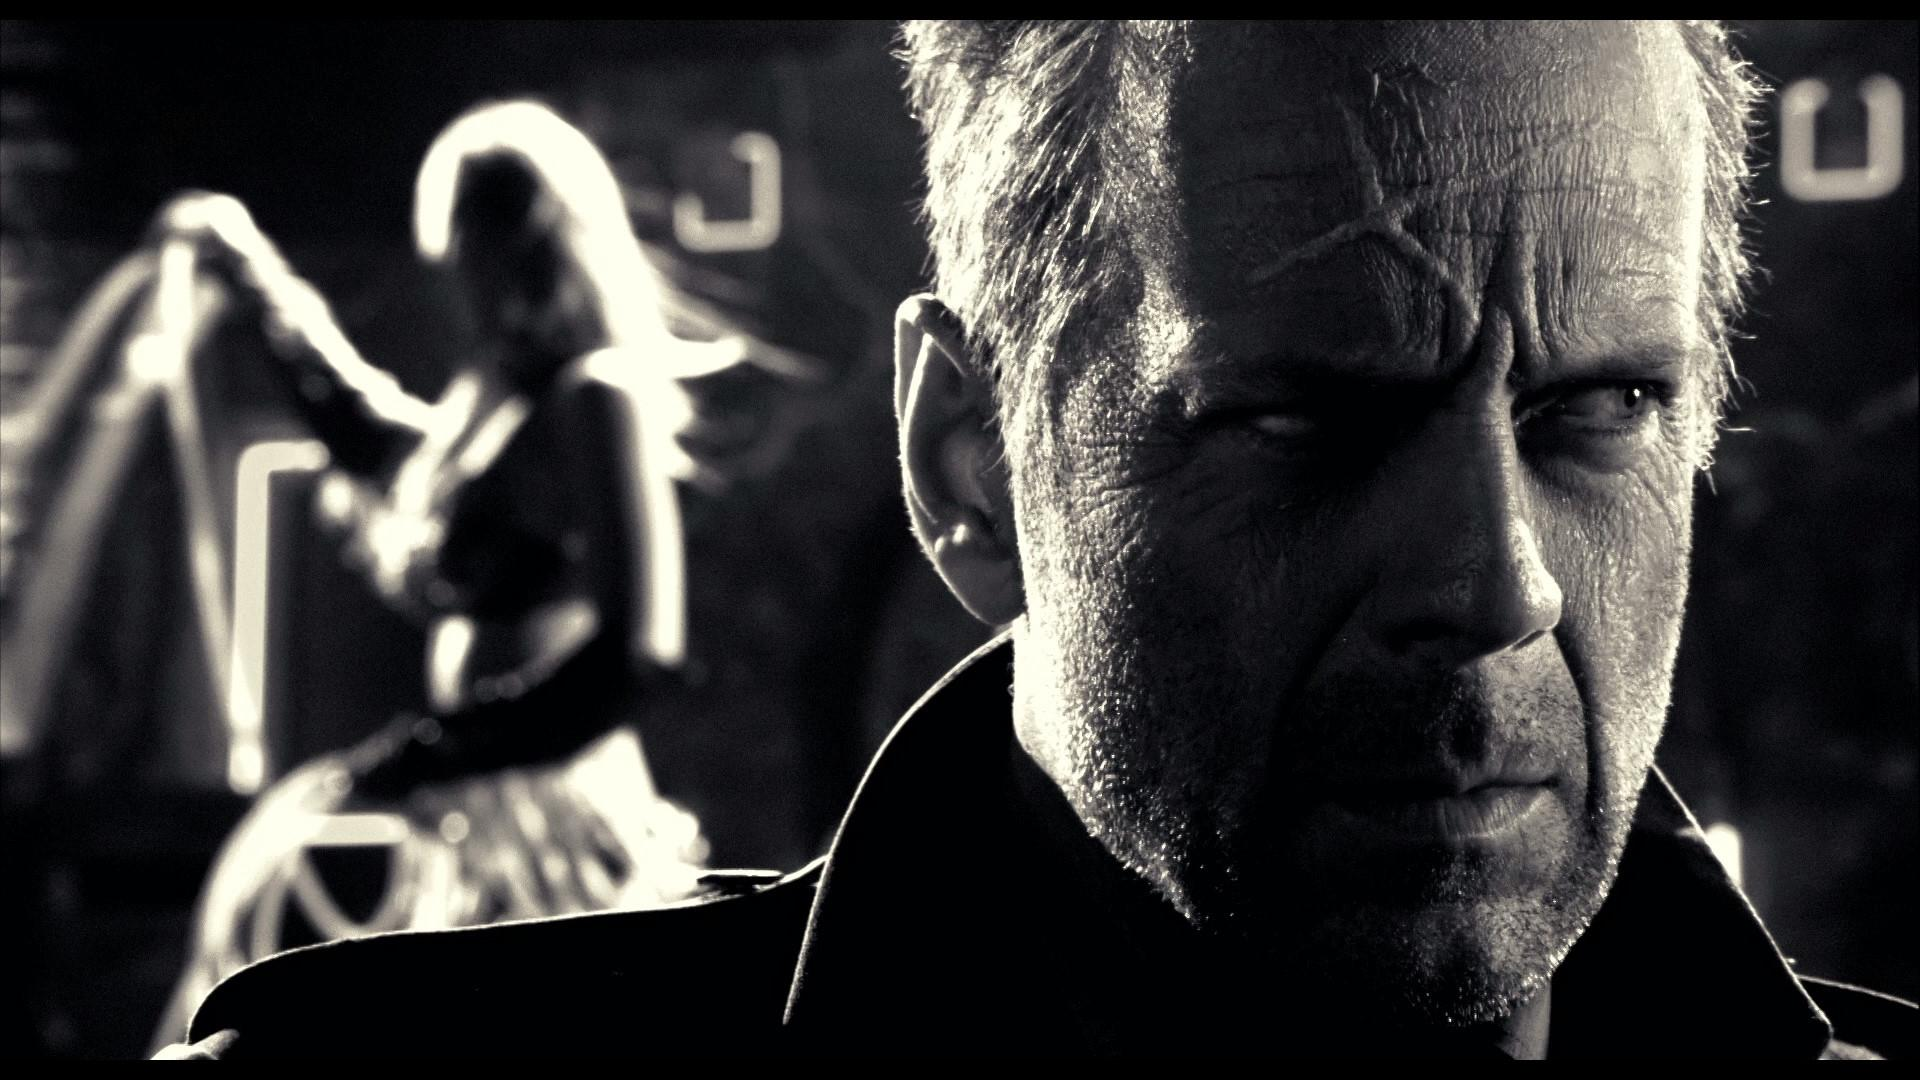 John Hartigan Screenshot - Sin City Wallpaper (1920x1080) (64490)